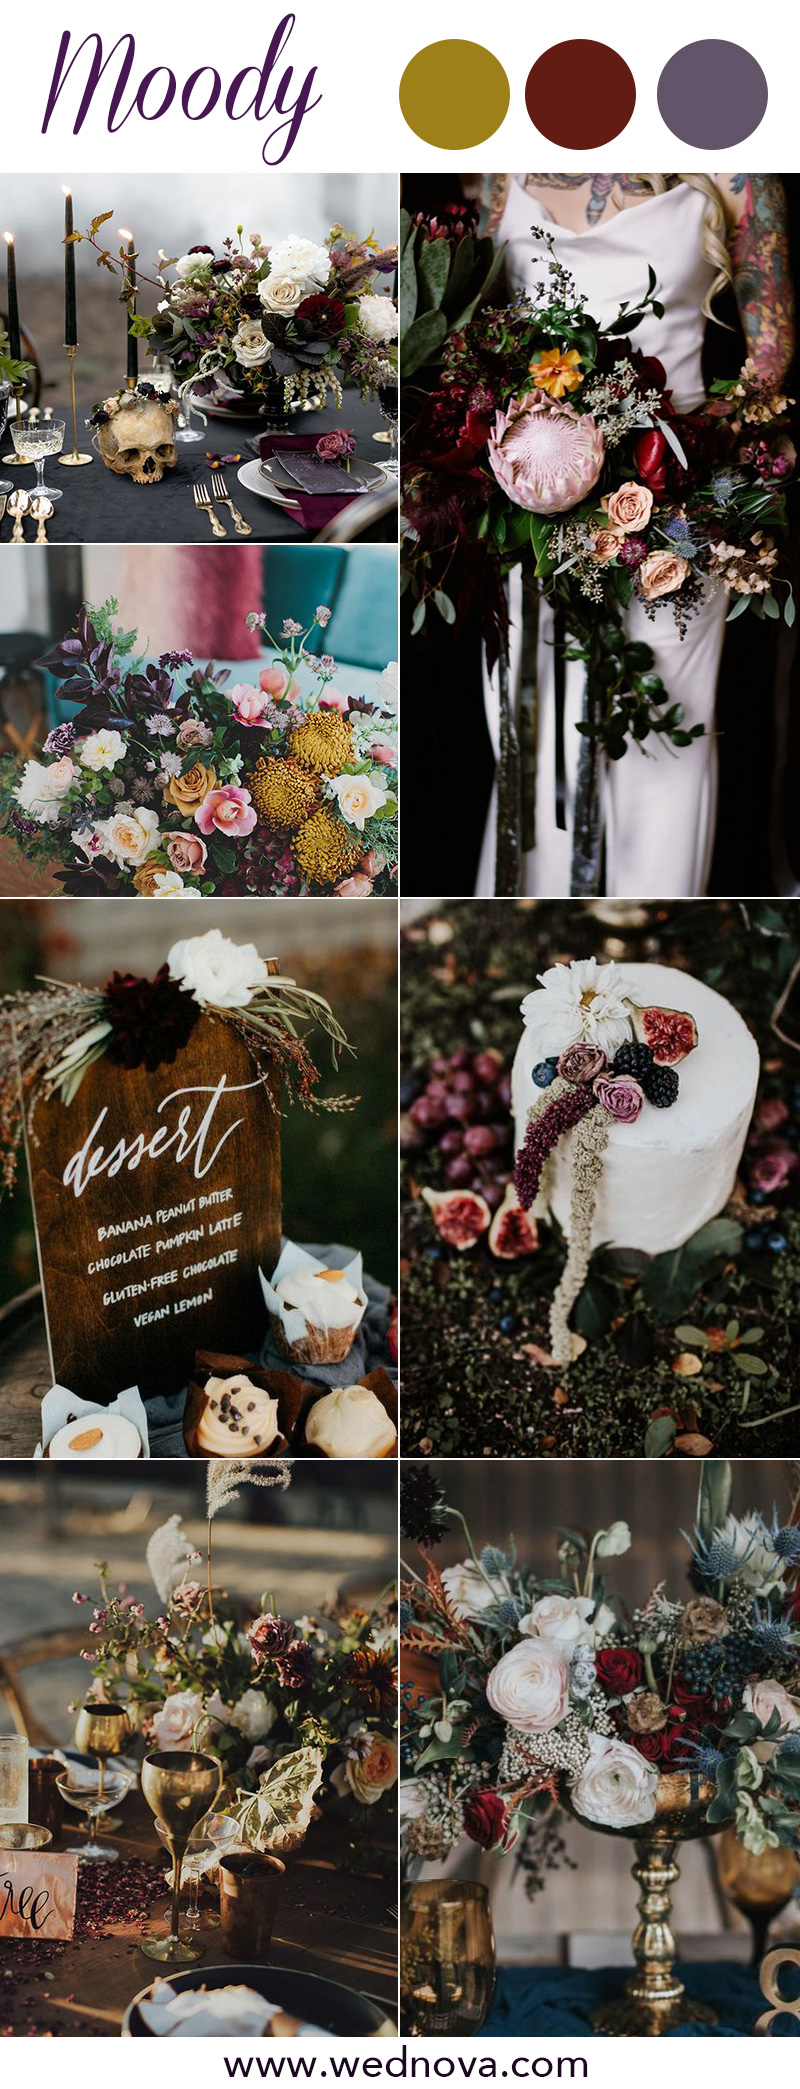 8 Chic Moody Wedding Color Palettes That Celebrate the Season - WedNova Blog